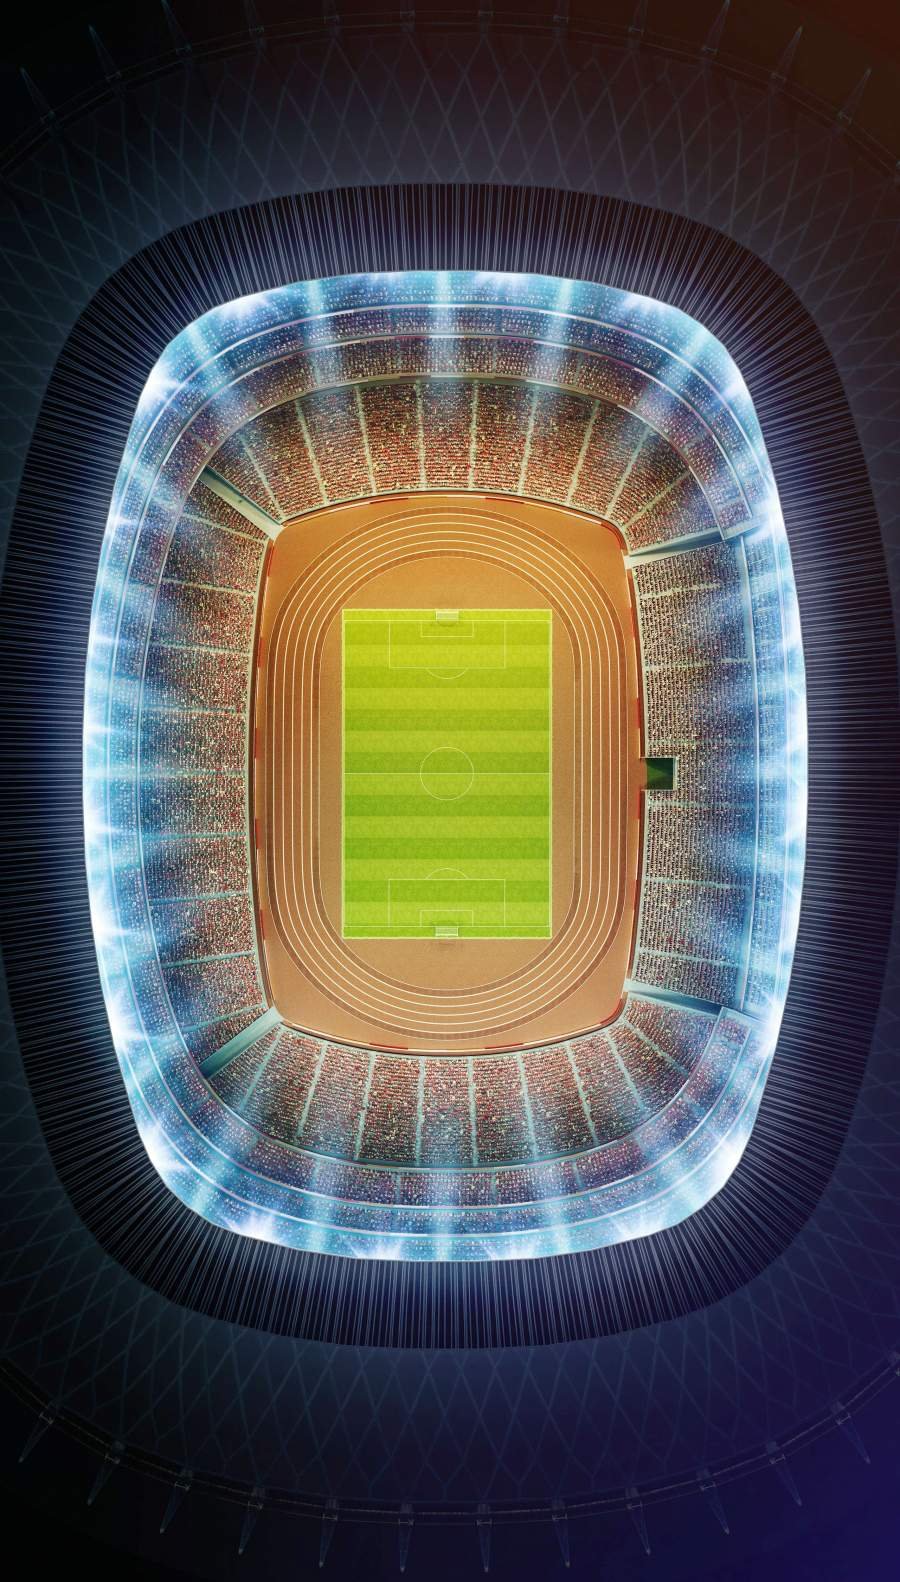 Soccer Pitch iPhone Wallpaper